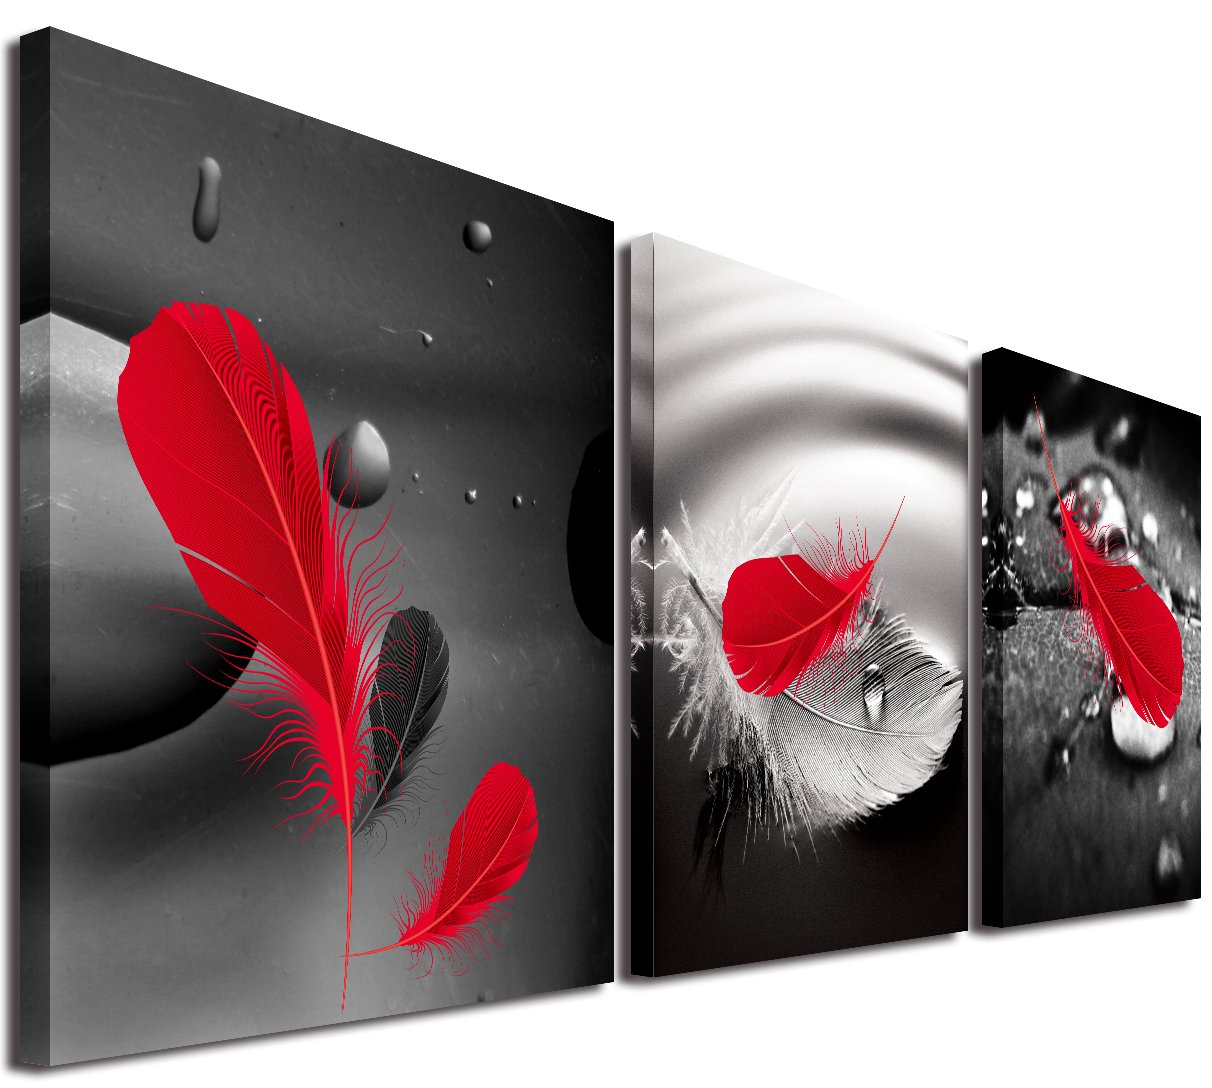 Mon Art 12In x 12In x3 Pics Abstract Art in Black Background Red Feather on Canvas Wall Decor Wall Art Home Decor Decoration Bathroom Bedroom Living Room Stretched and Framed Ready to Hang